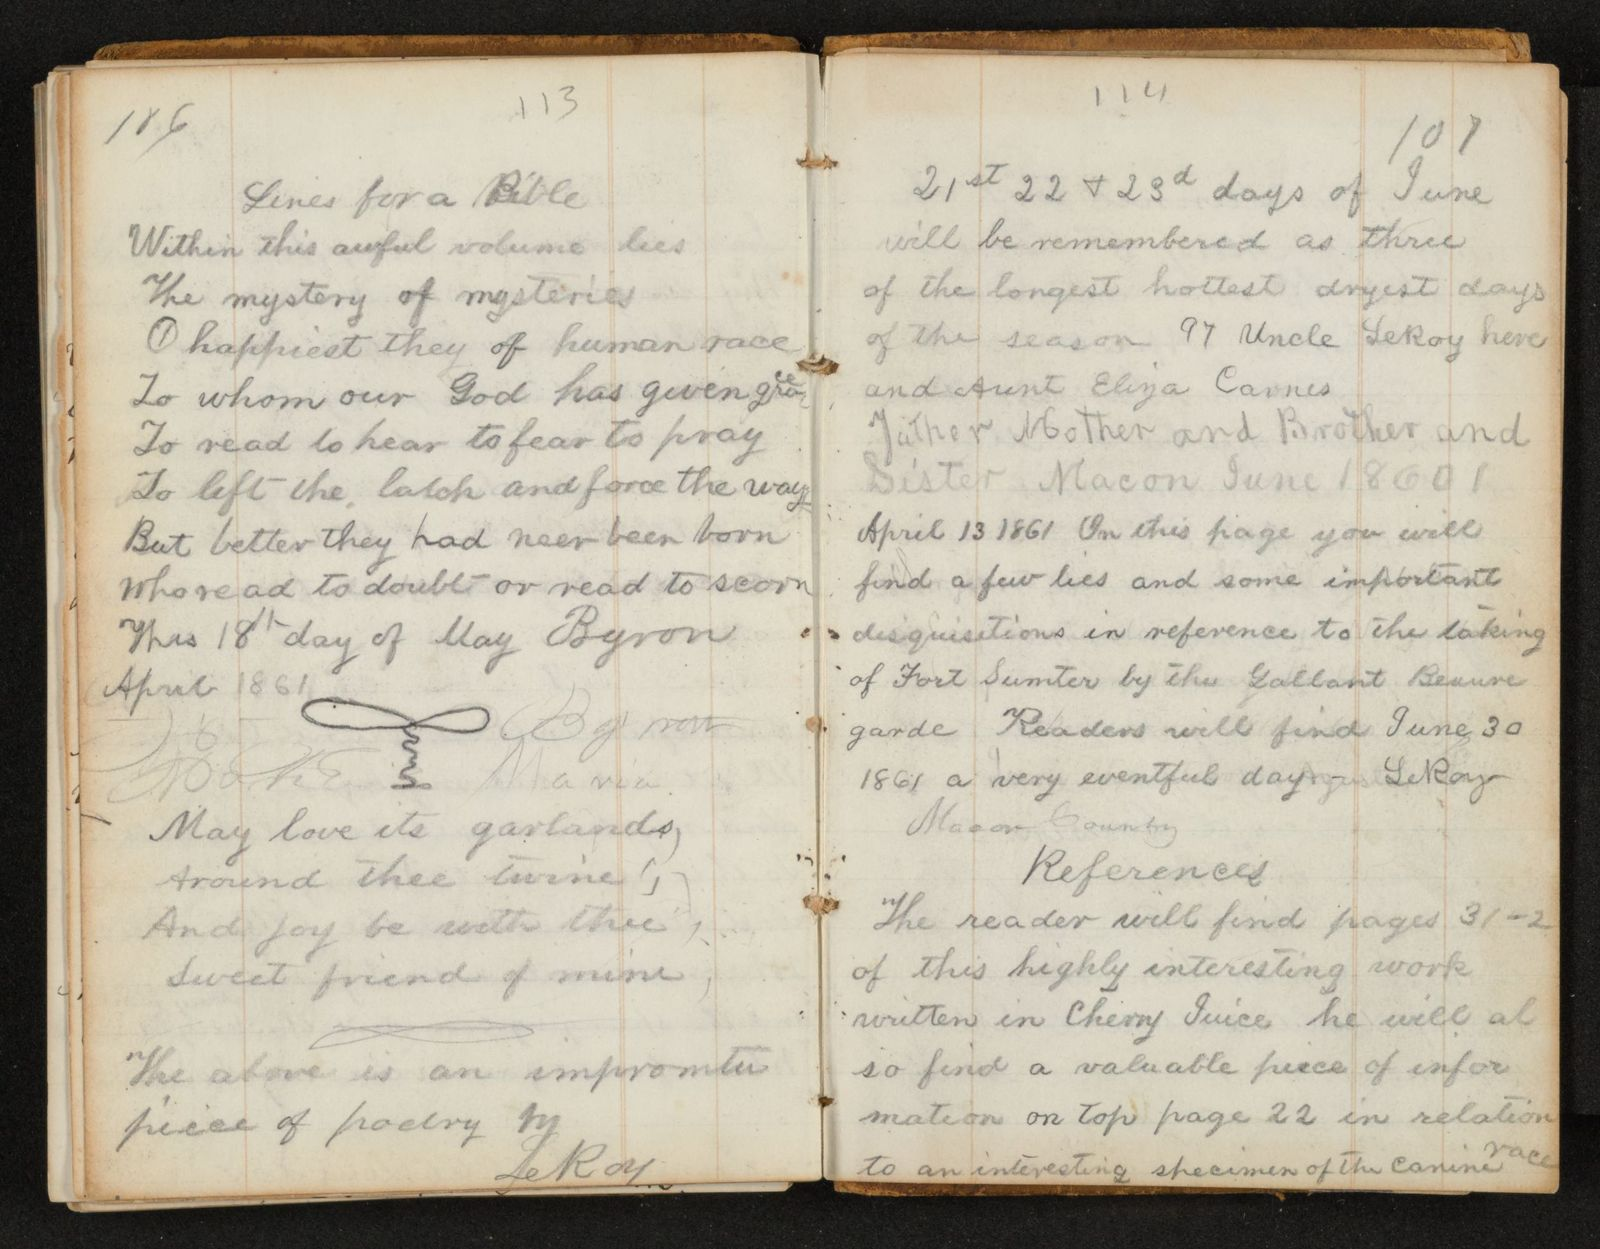 Lewis H. Machen Family Papers: Diaries and Diary Transcriptions, 1860-1865; Diaries; Gresham, LeRoy Wiley; 1861, 27 Mar.-1 Aug.